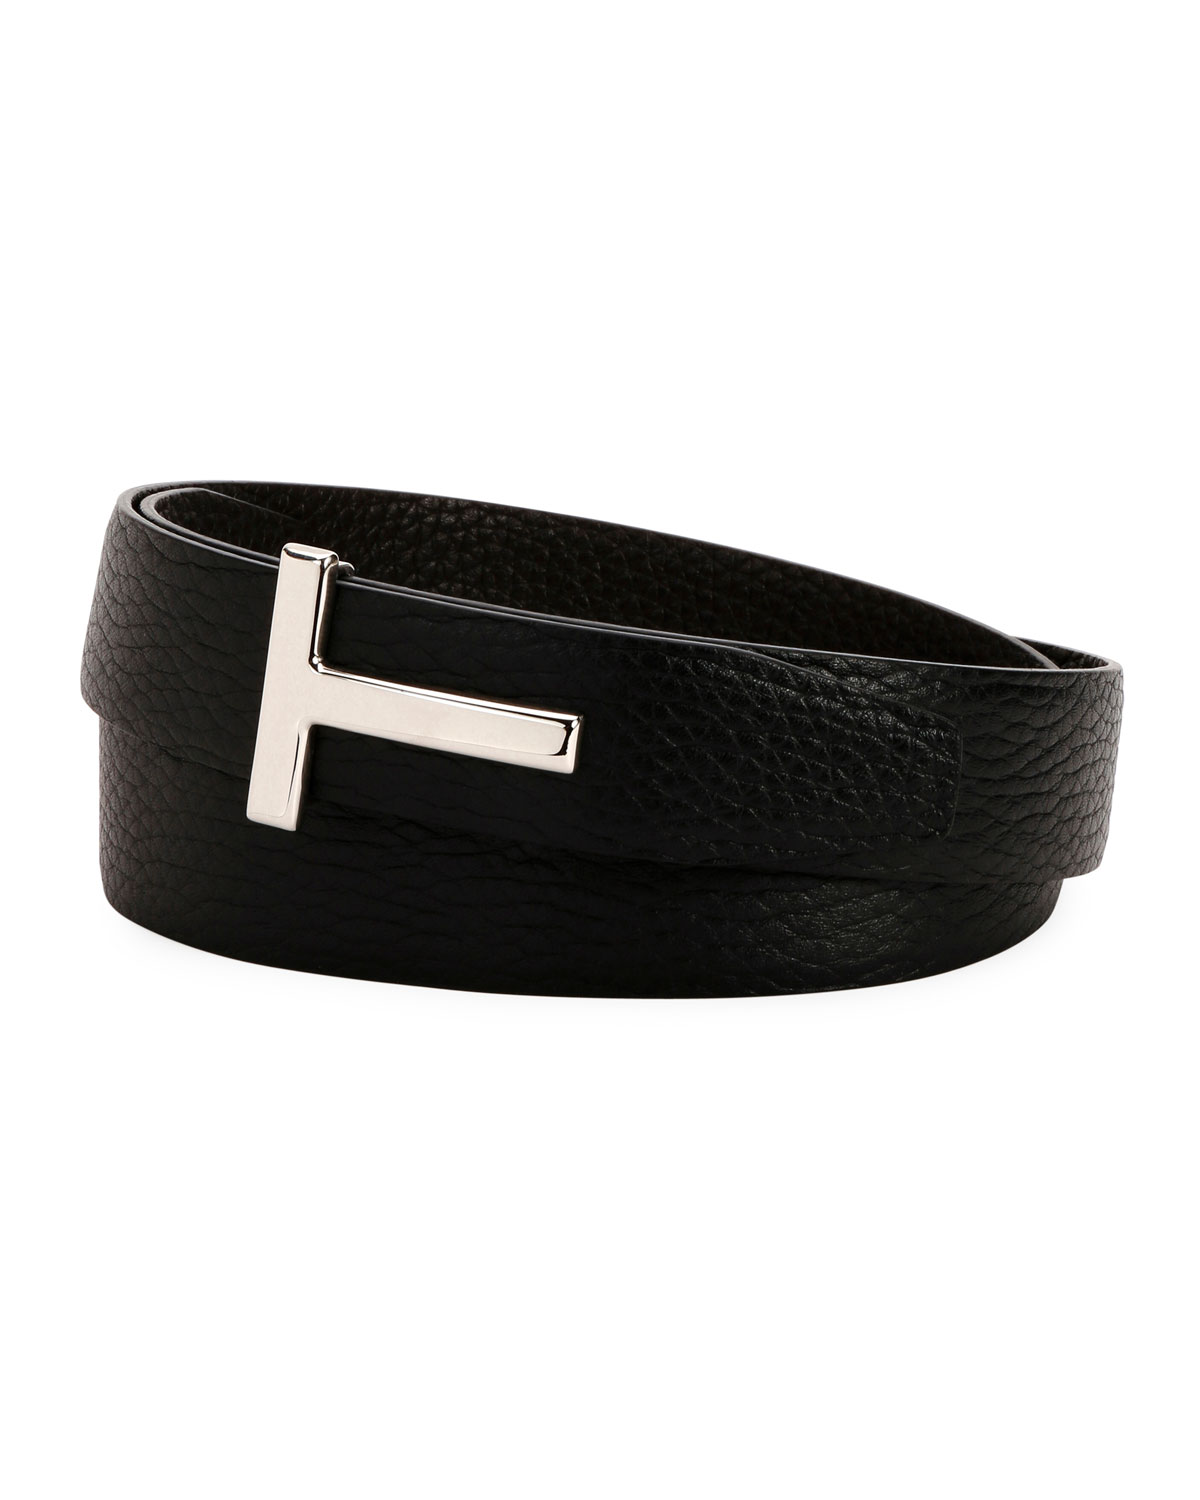 94cc5675dc66 TOM FORD Men s T Belt